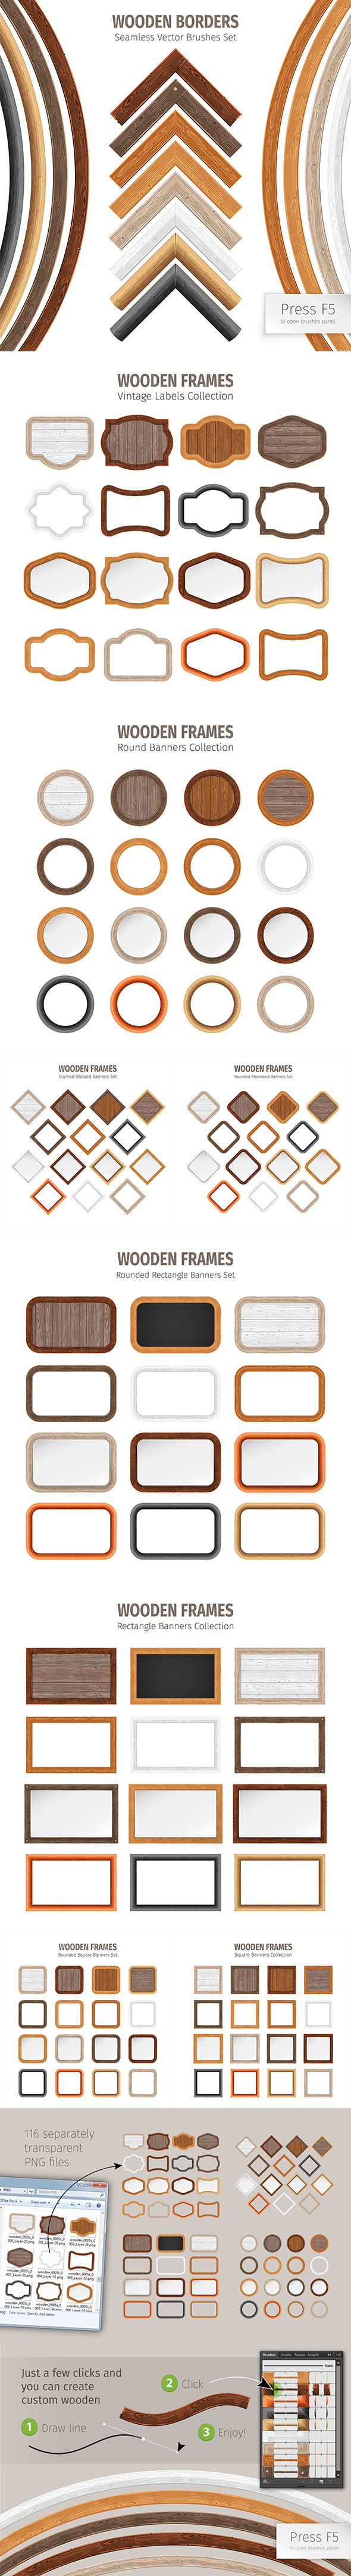 Wooden Borders Vector Brushes - Texture Brushes